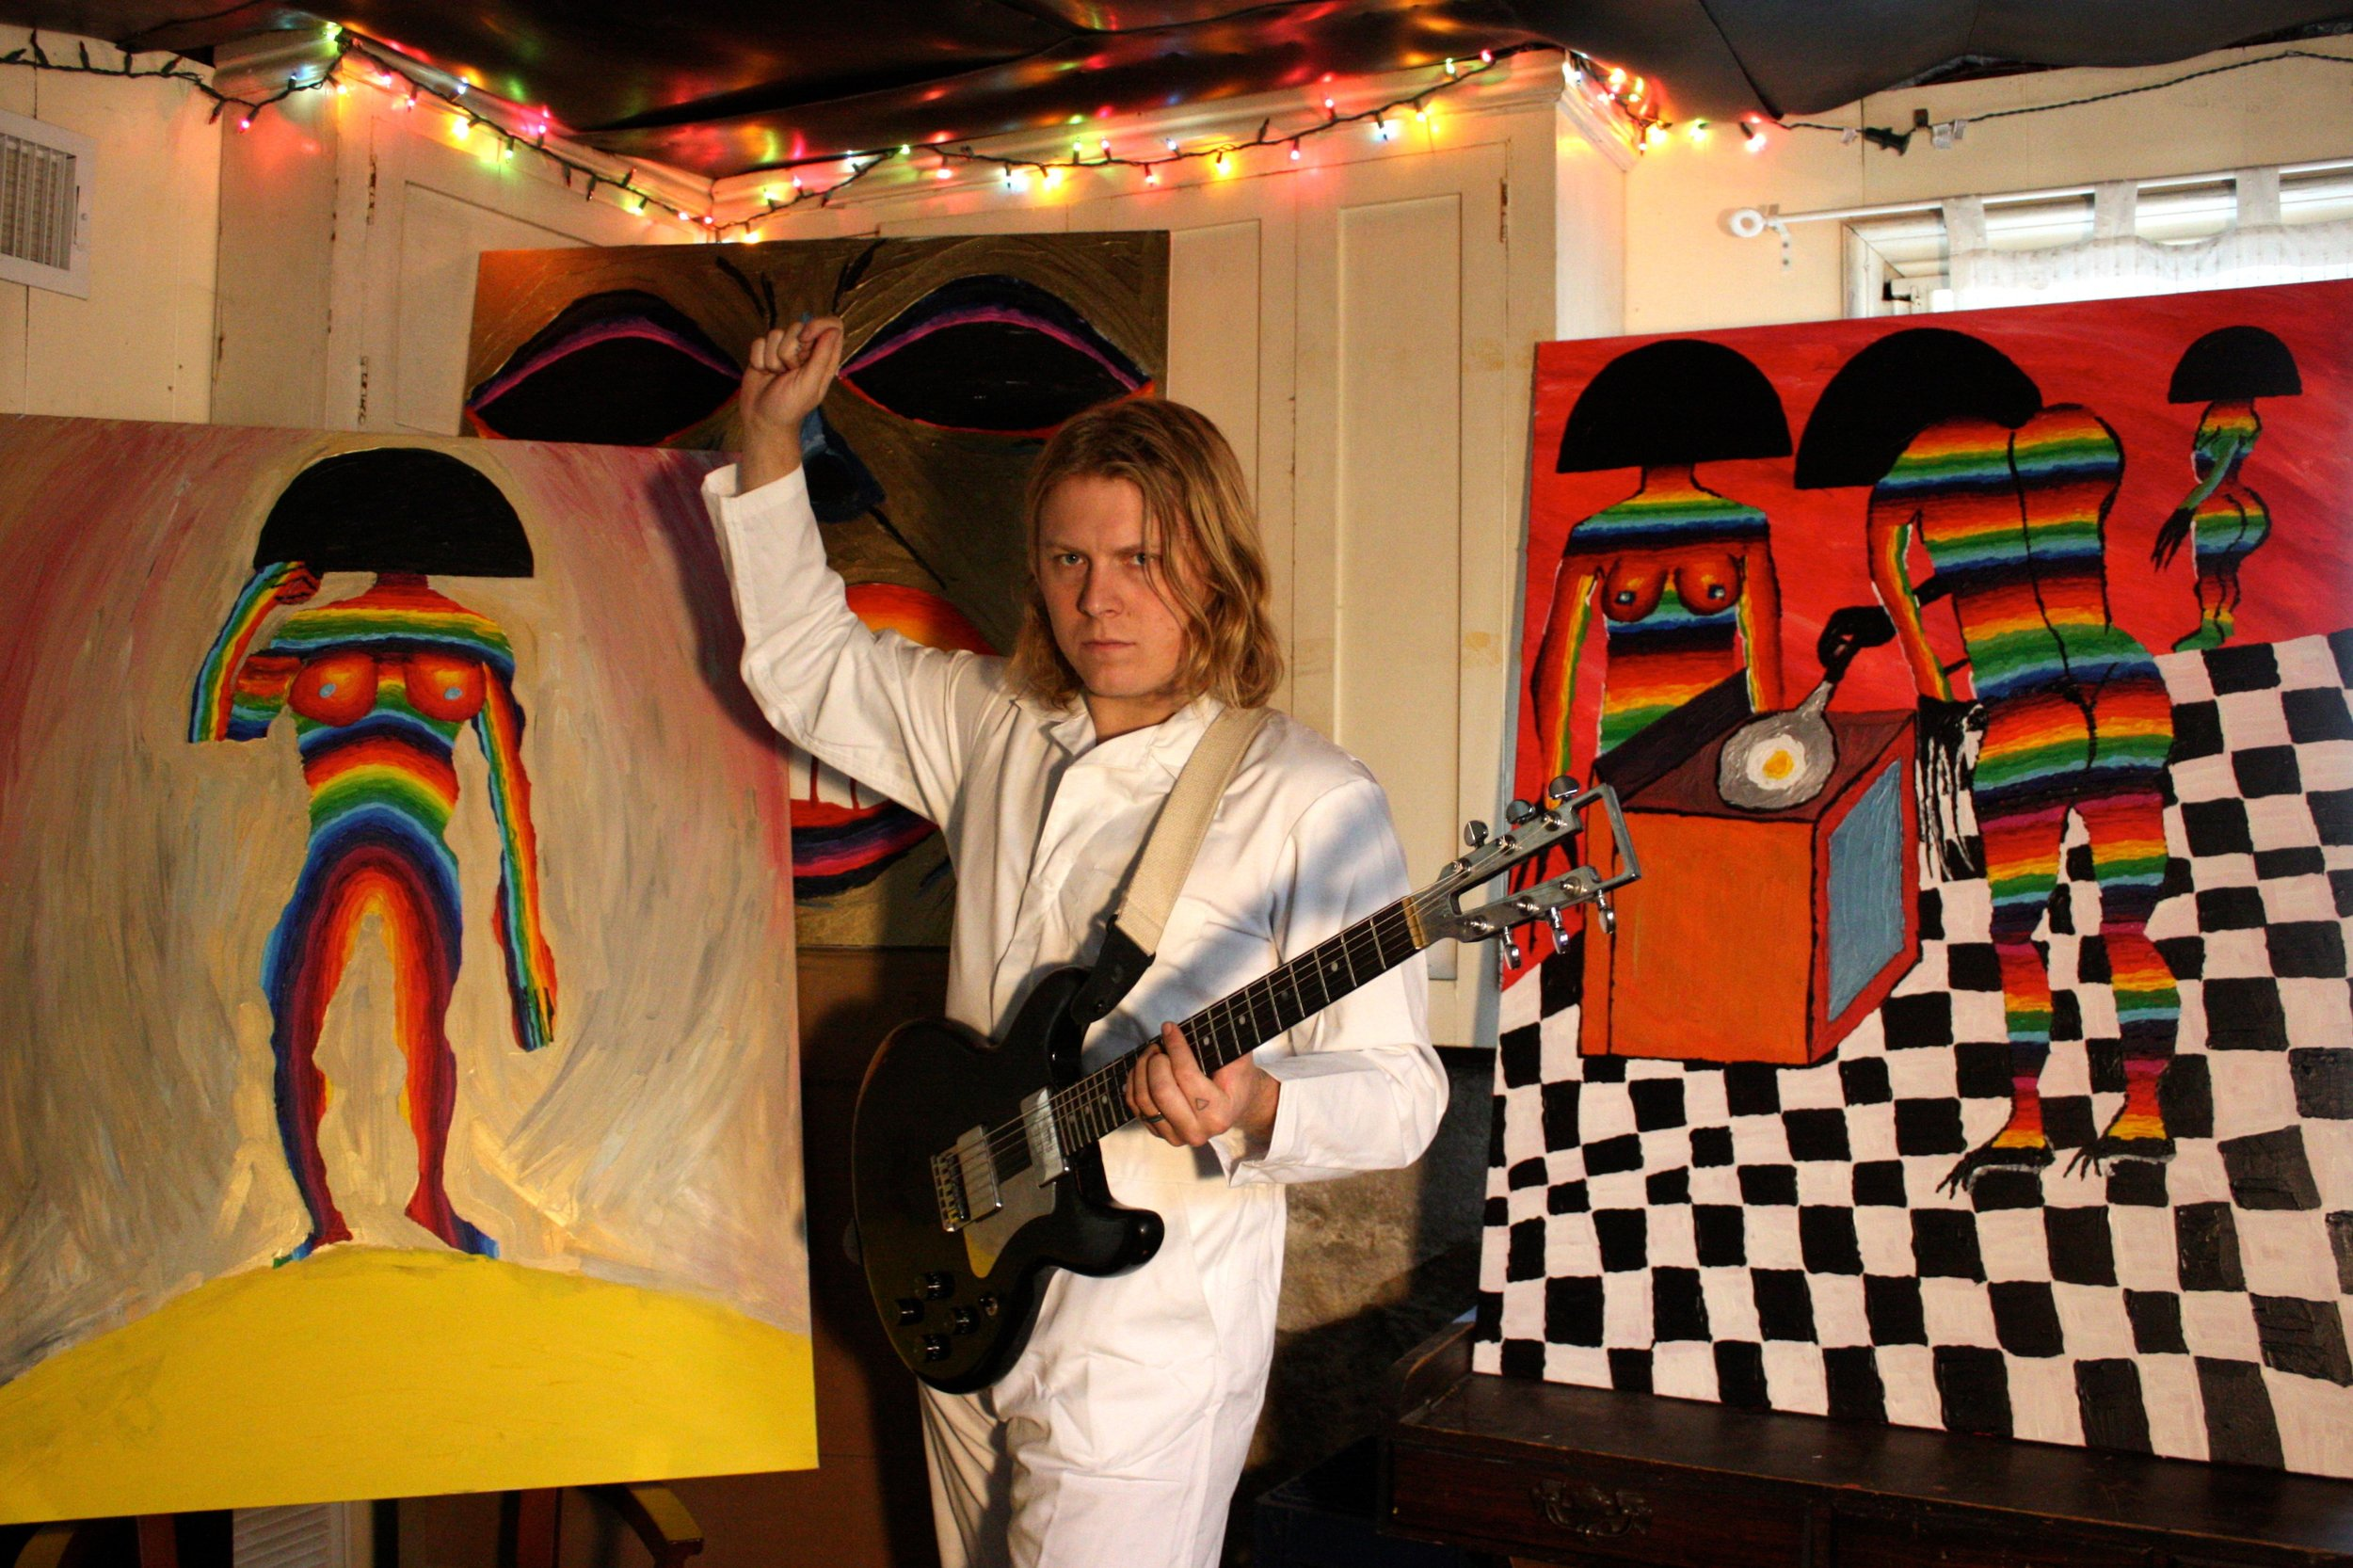 New art … Ty Segall